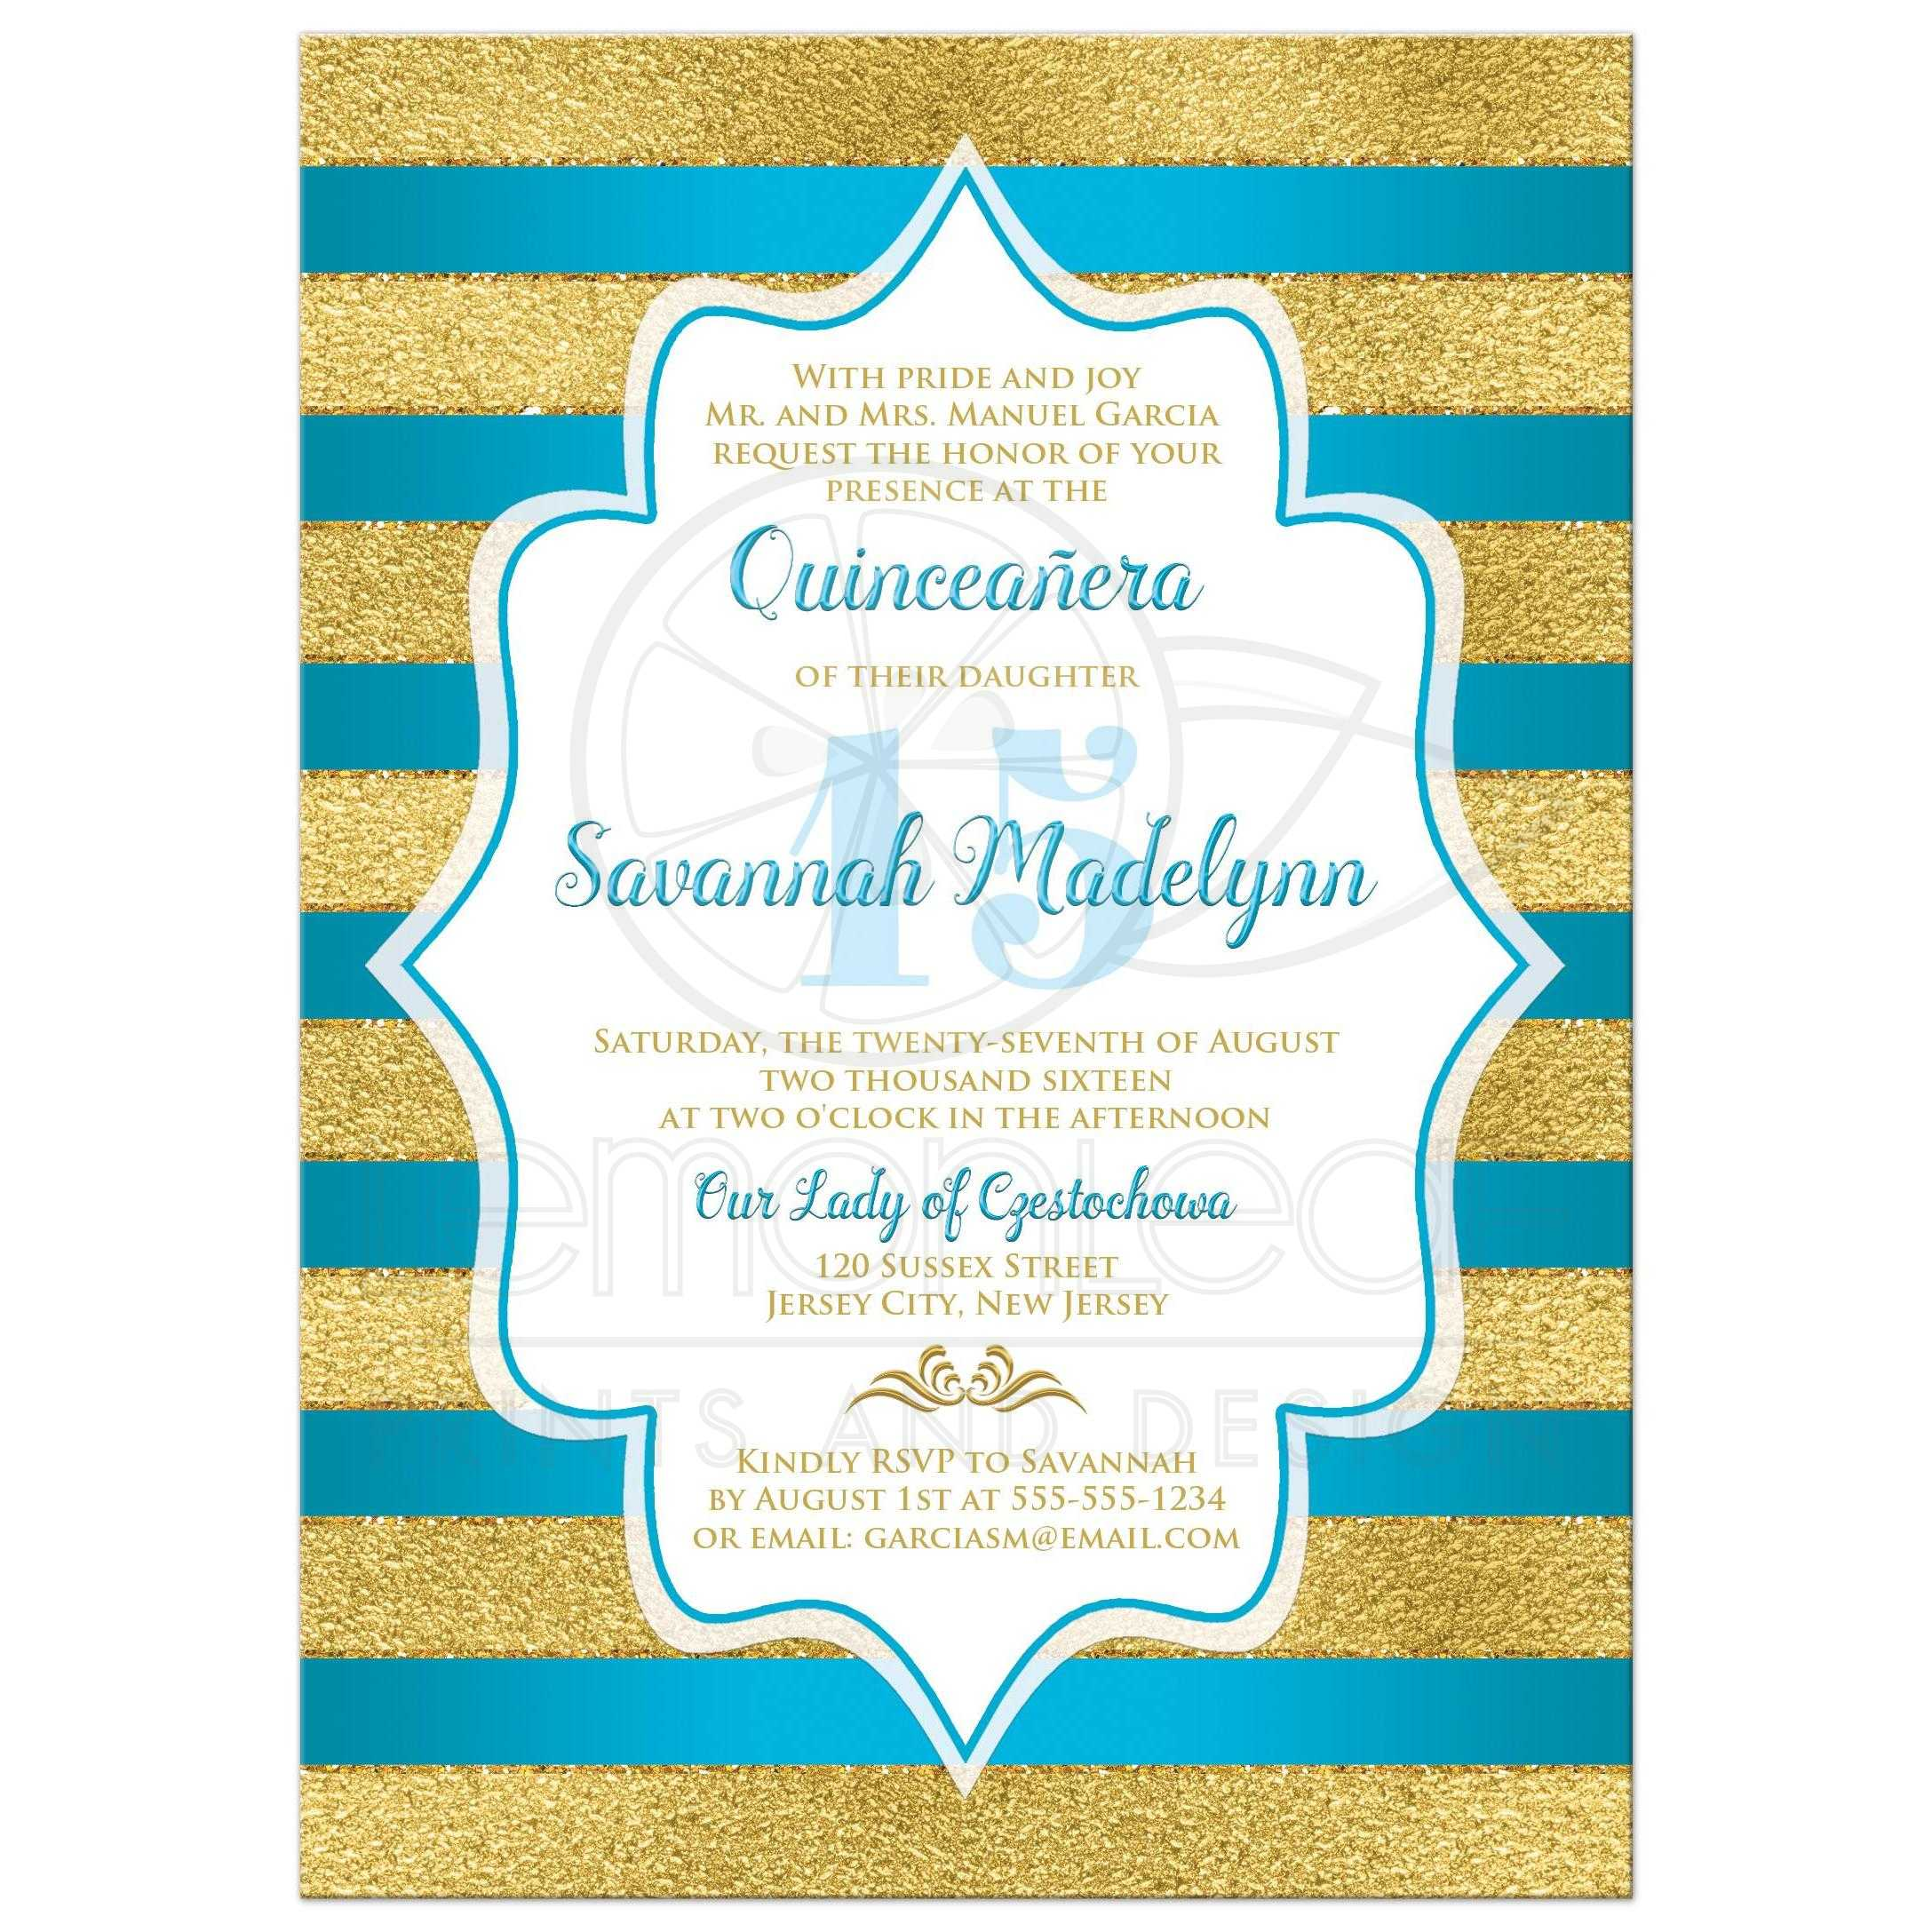 invitations 15th birthday party - Keni.candlecomfortzone.com